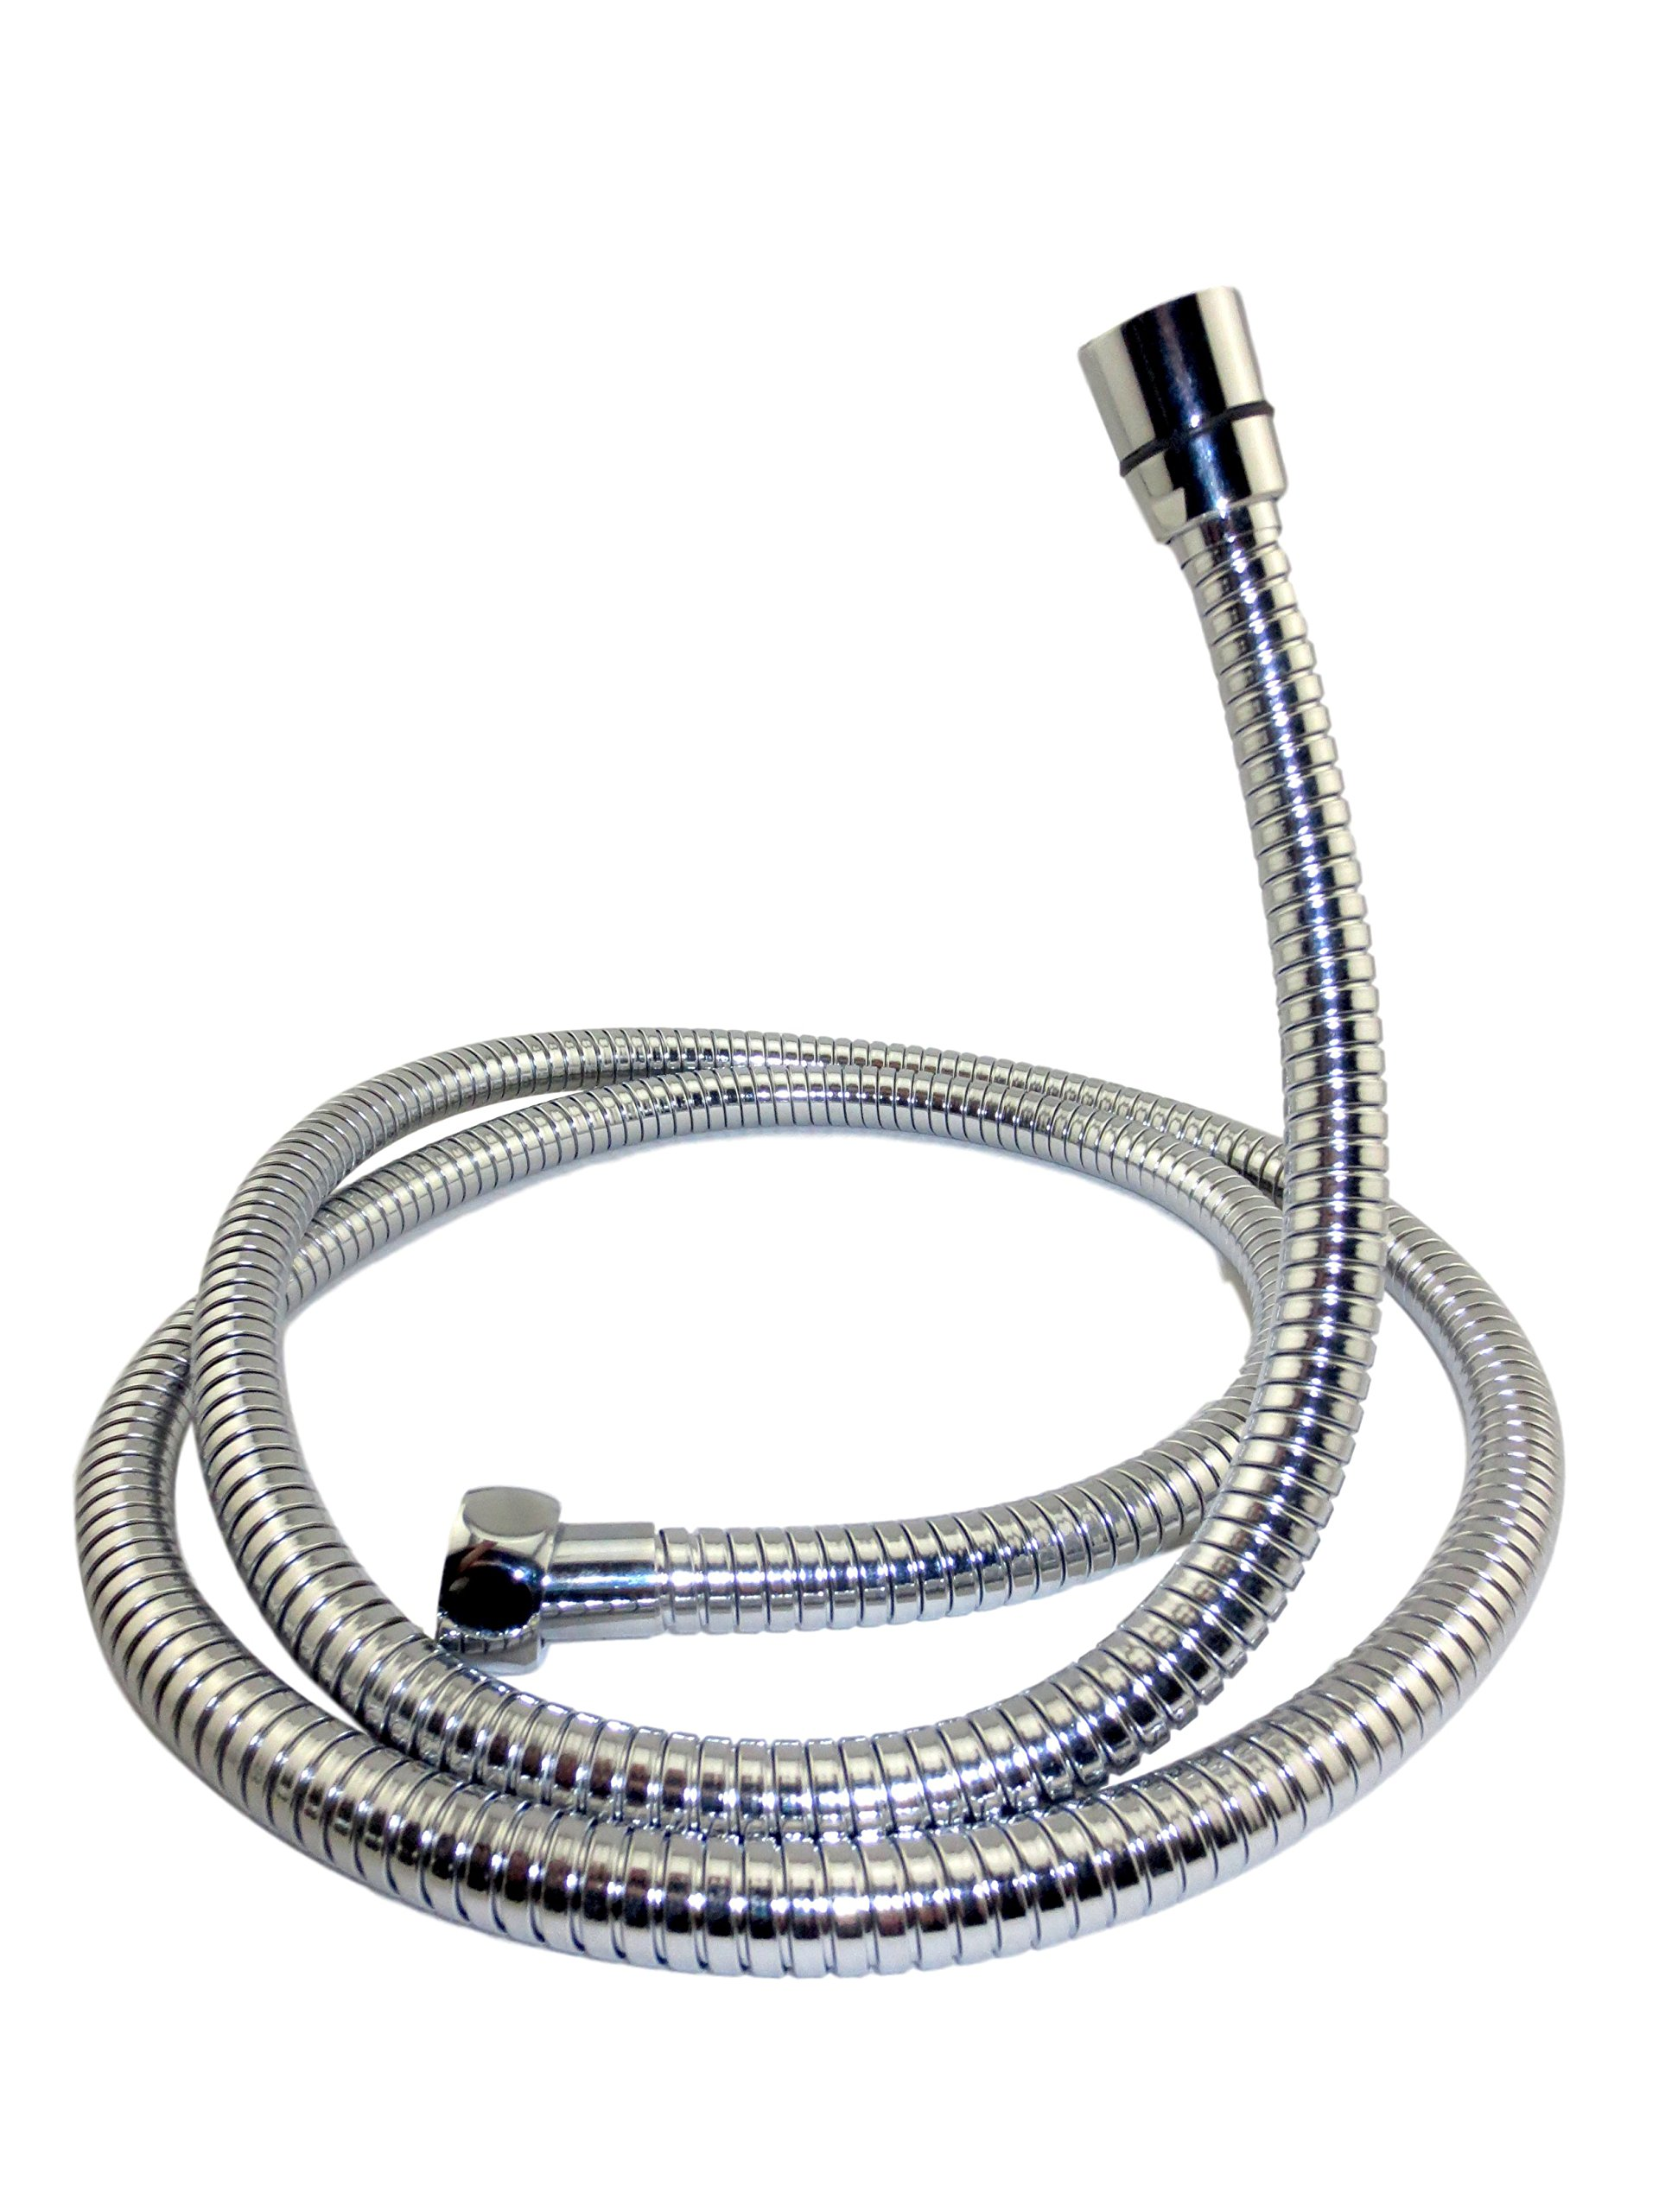 HandyMom 5-Foot Flexible Chrome Steel-encased Handheld Shower Replacement Hose by HandyMom